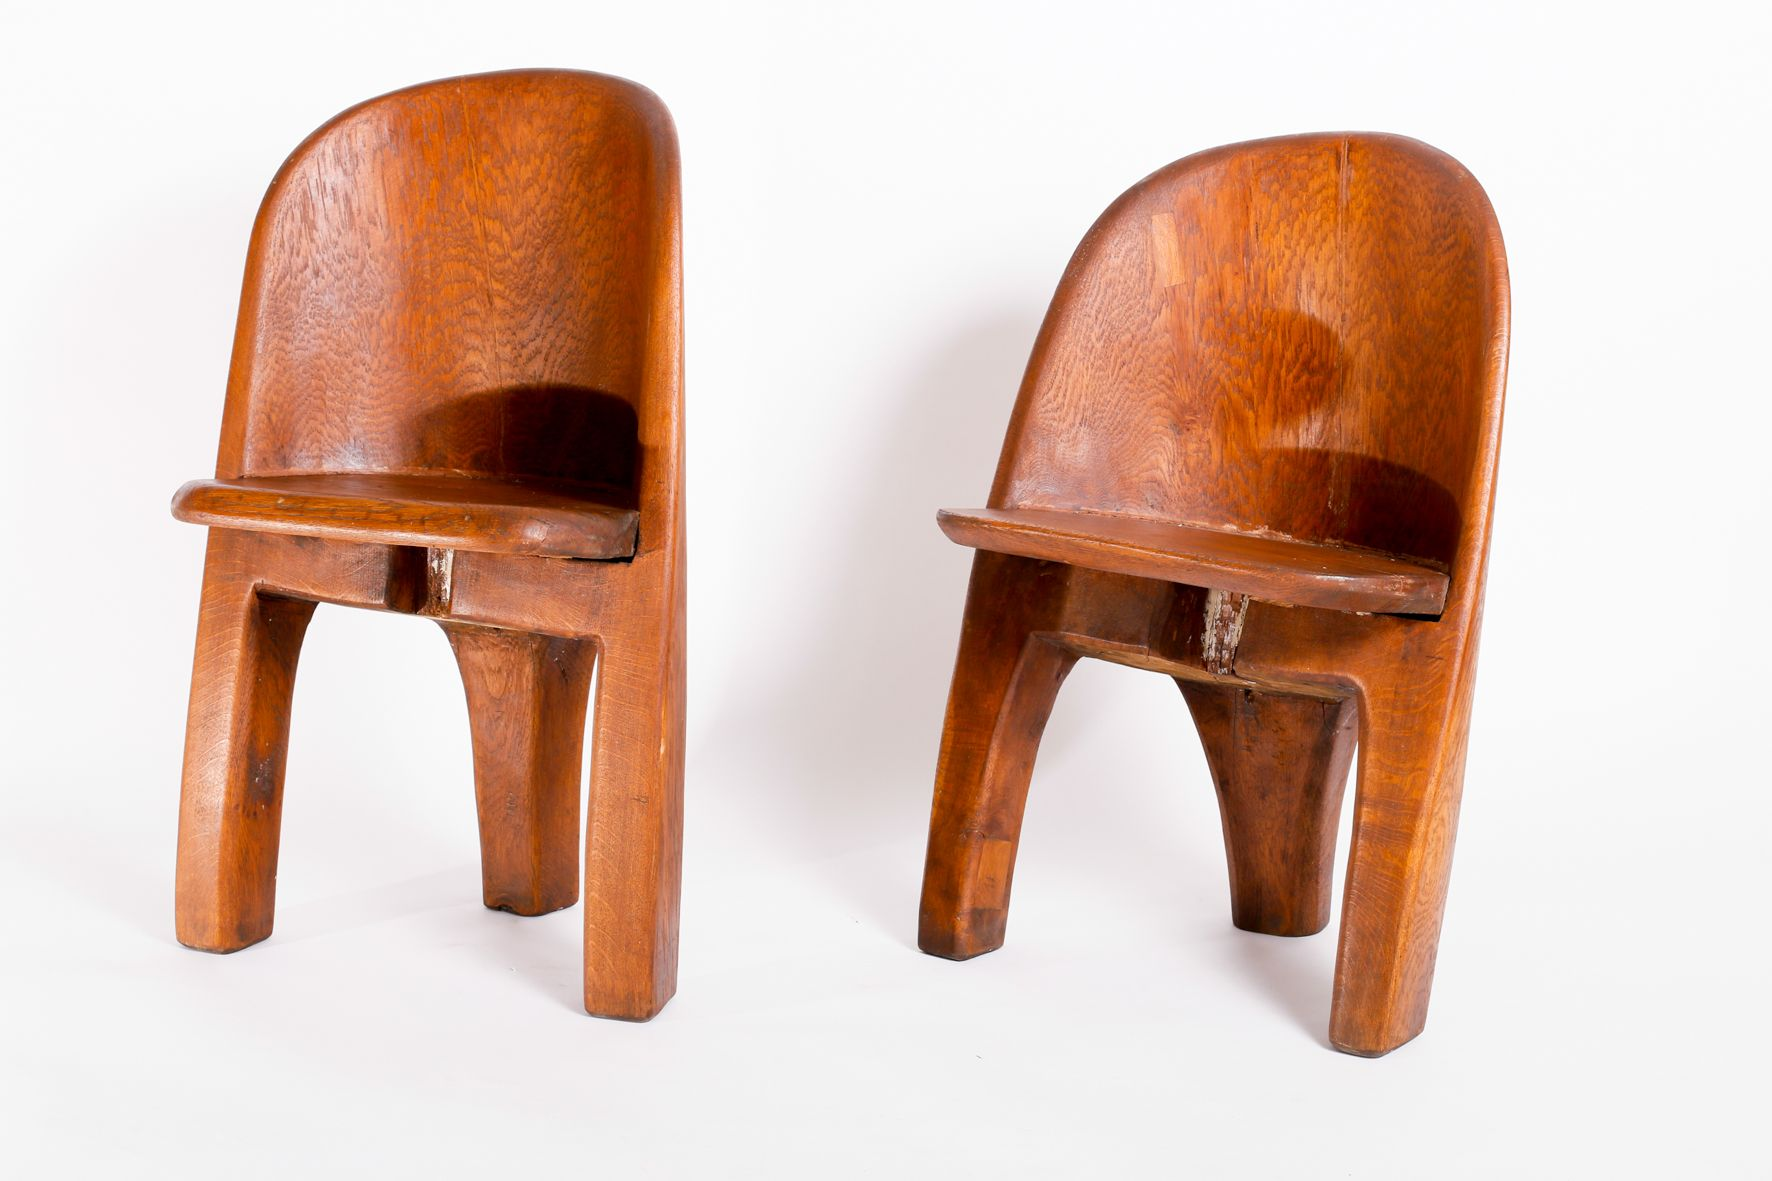 Vintage Brutalist Solid Oak Chairs Set of 2 for sale at Pamono